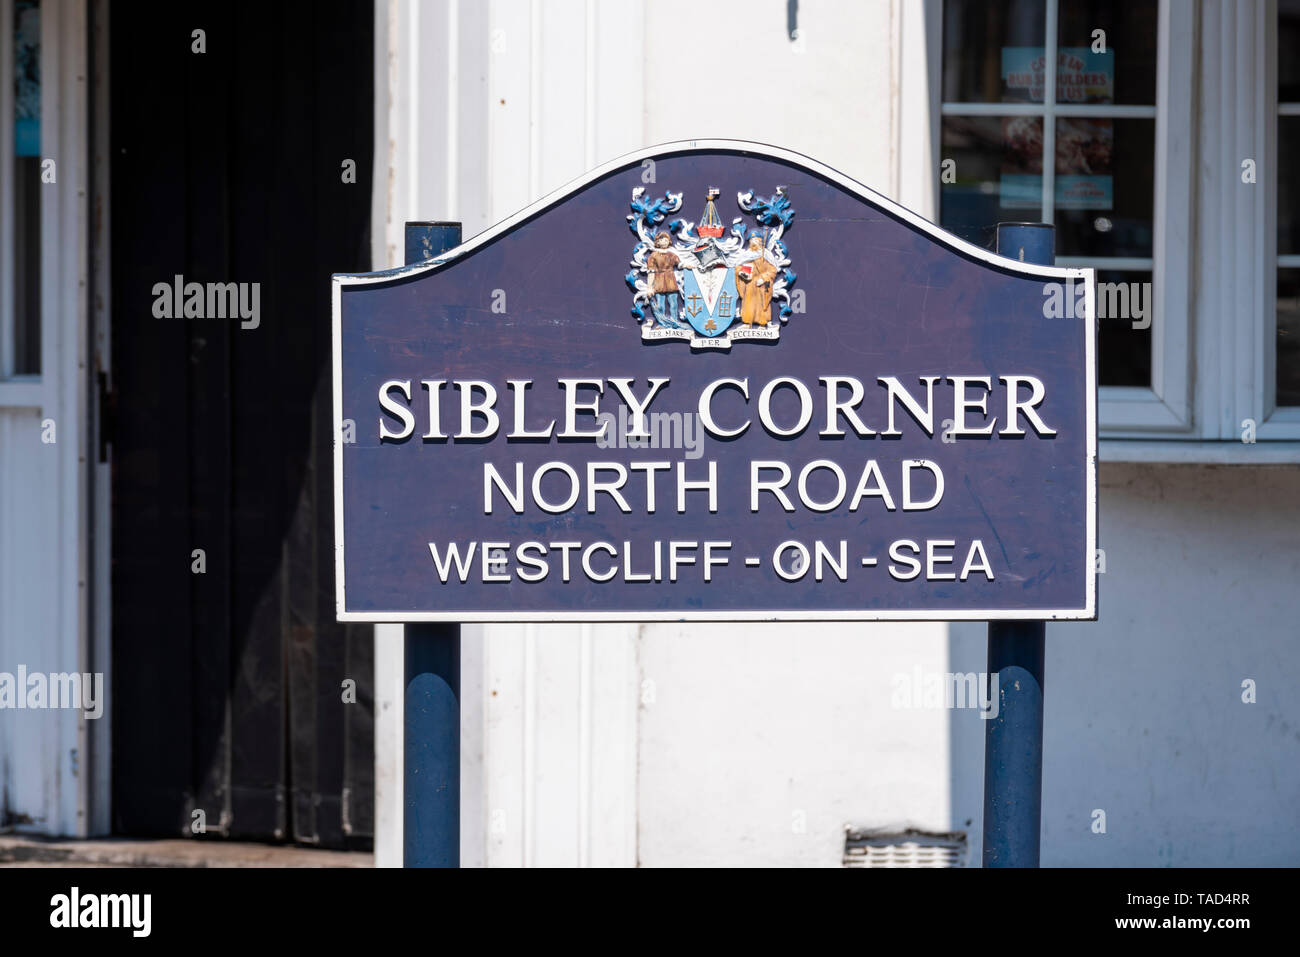 Sibley Corner, North Road, Westcliff on Sea, Essex, UK. Sign. Southend borough - Stock Image